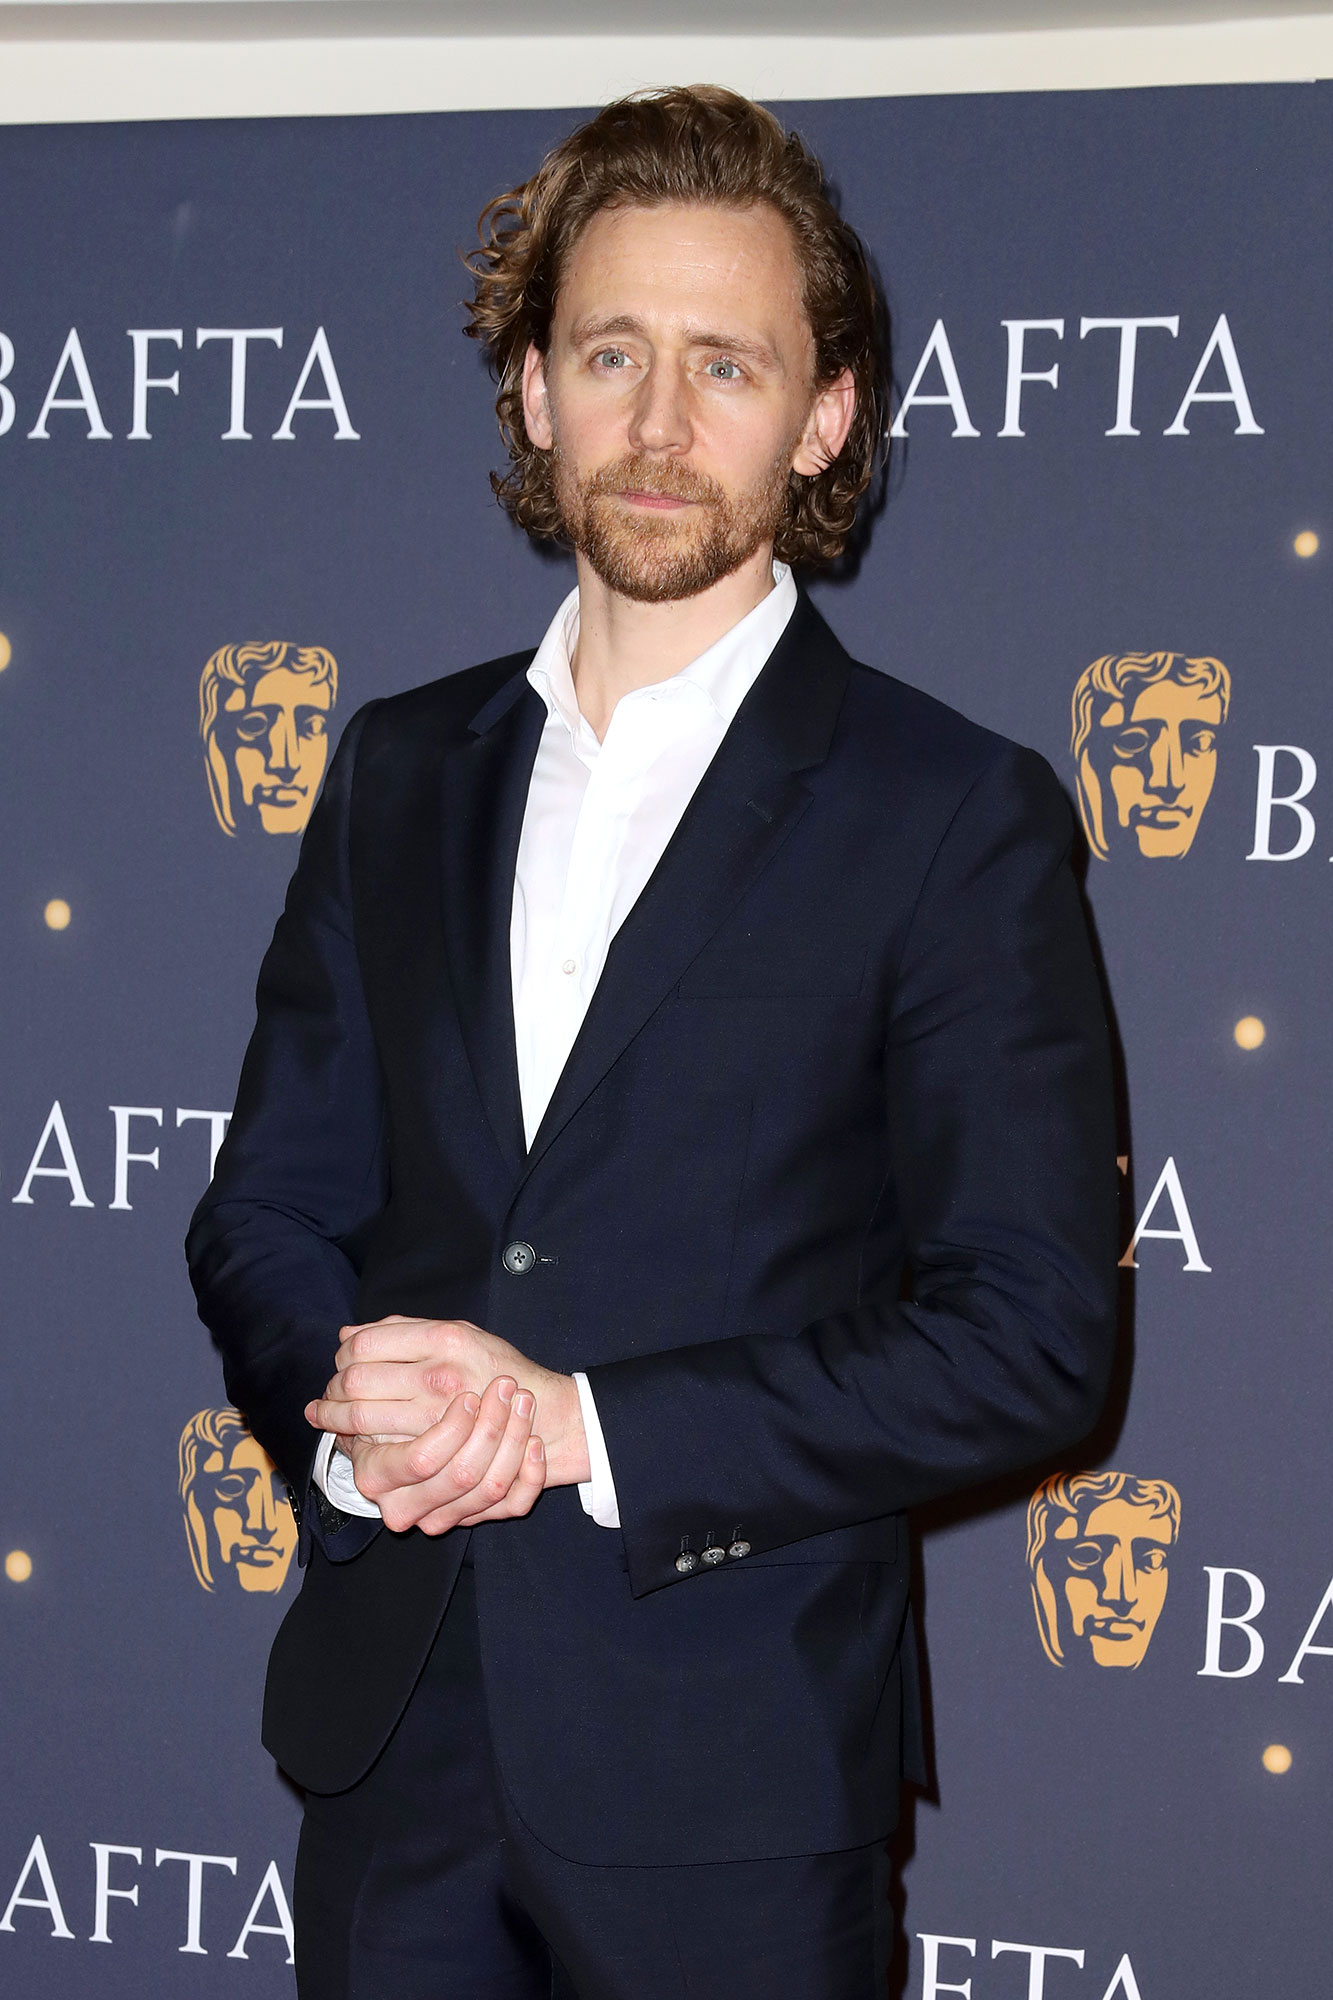 Tom Hiddleston Gets Dragged for Appearing in Women's Vitamin Ad - Tom Hiddleston attends the BAFTA Film Gala at the The Savoy Hotel, ahead of the EE British Academy Film Awards this Sunday, on February 08, 2019 in London, England.